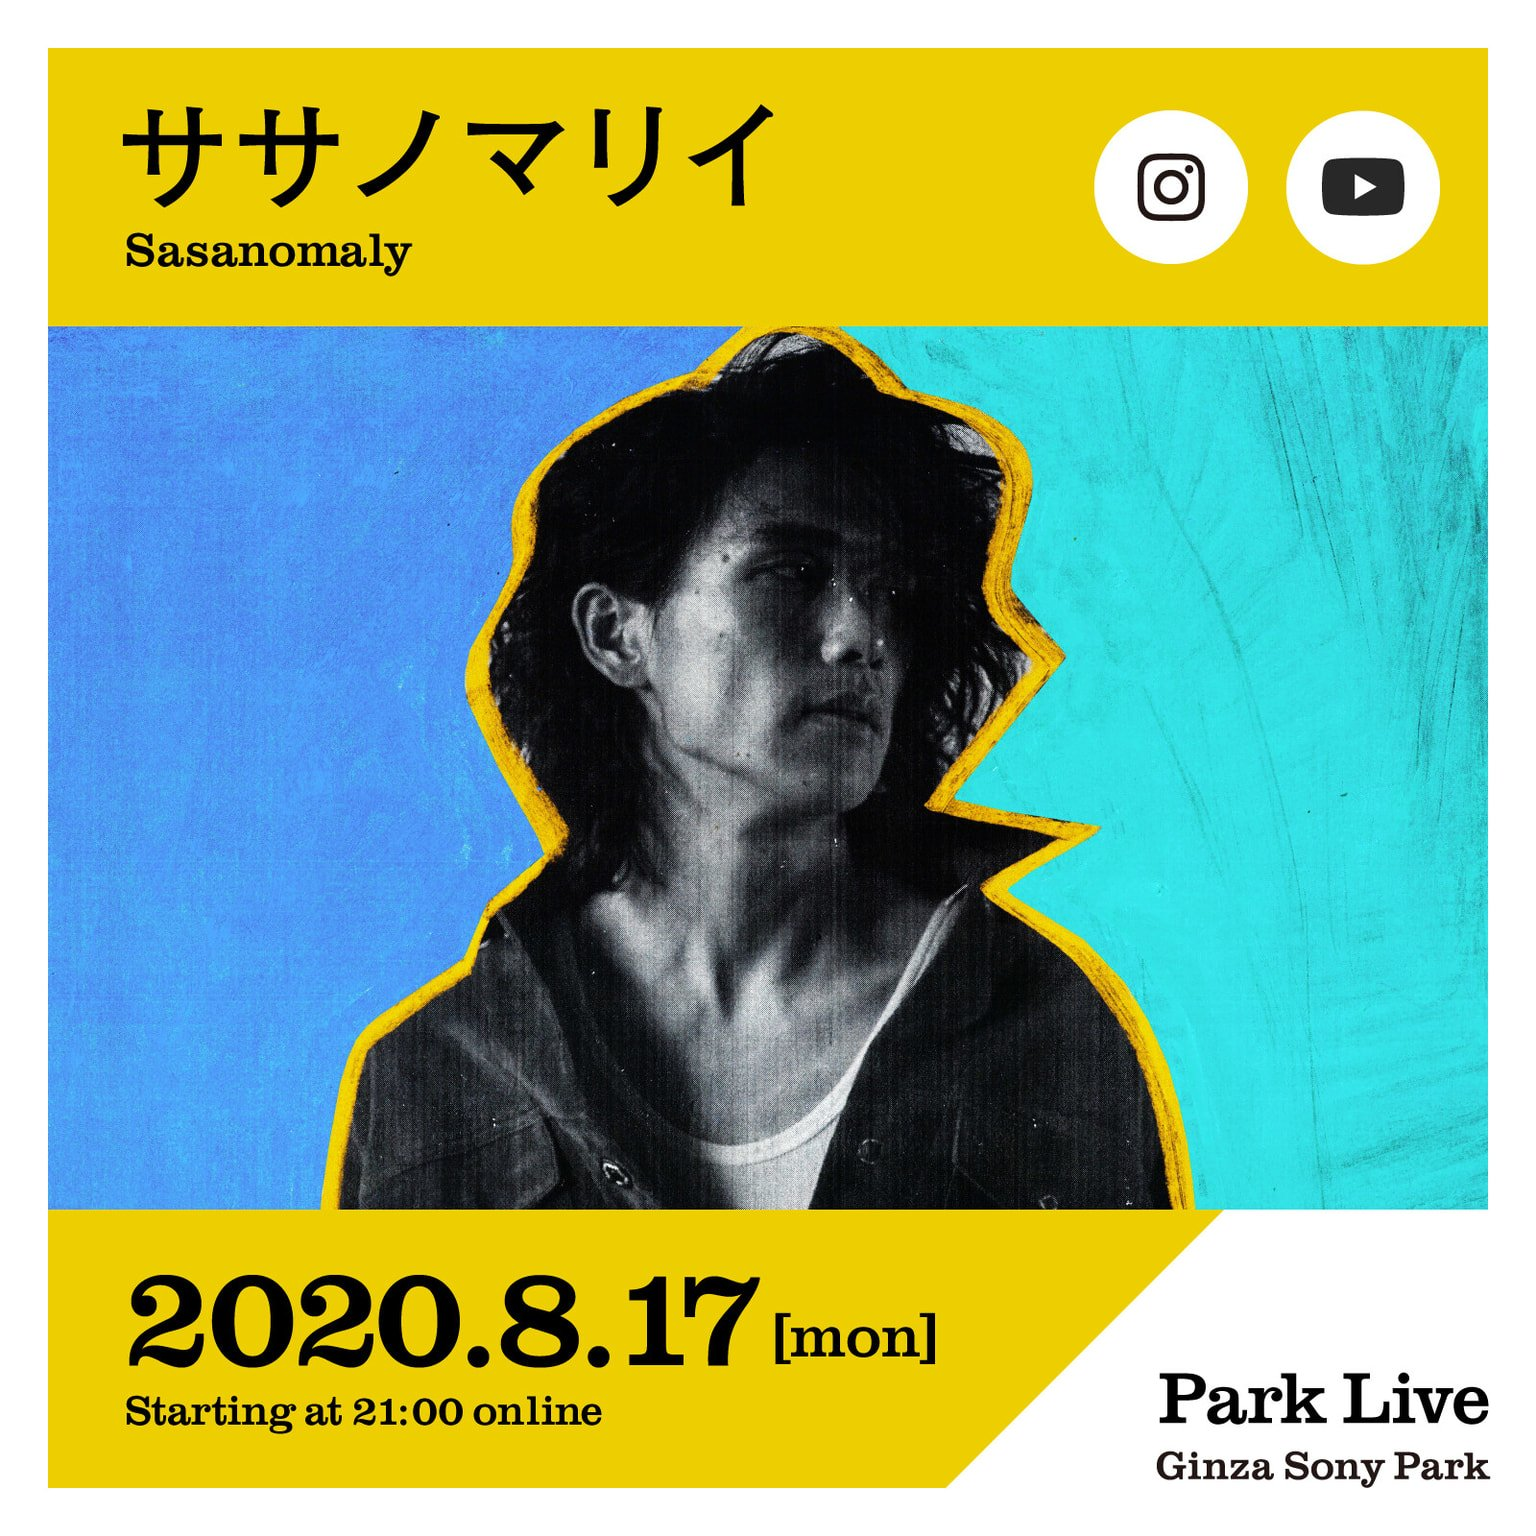 Park Live Ginza Sony Sasanomaly Music Concert Online Streaming Live Instagram YouTube Tokyo Weekender